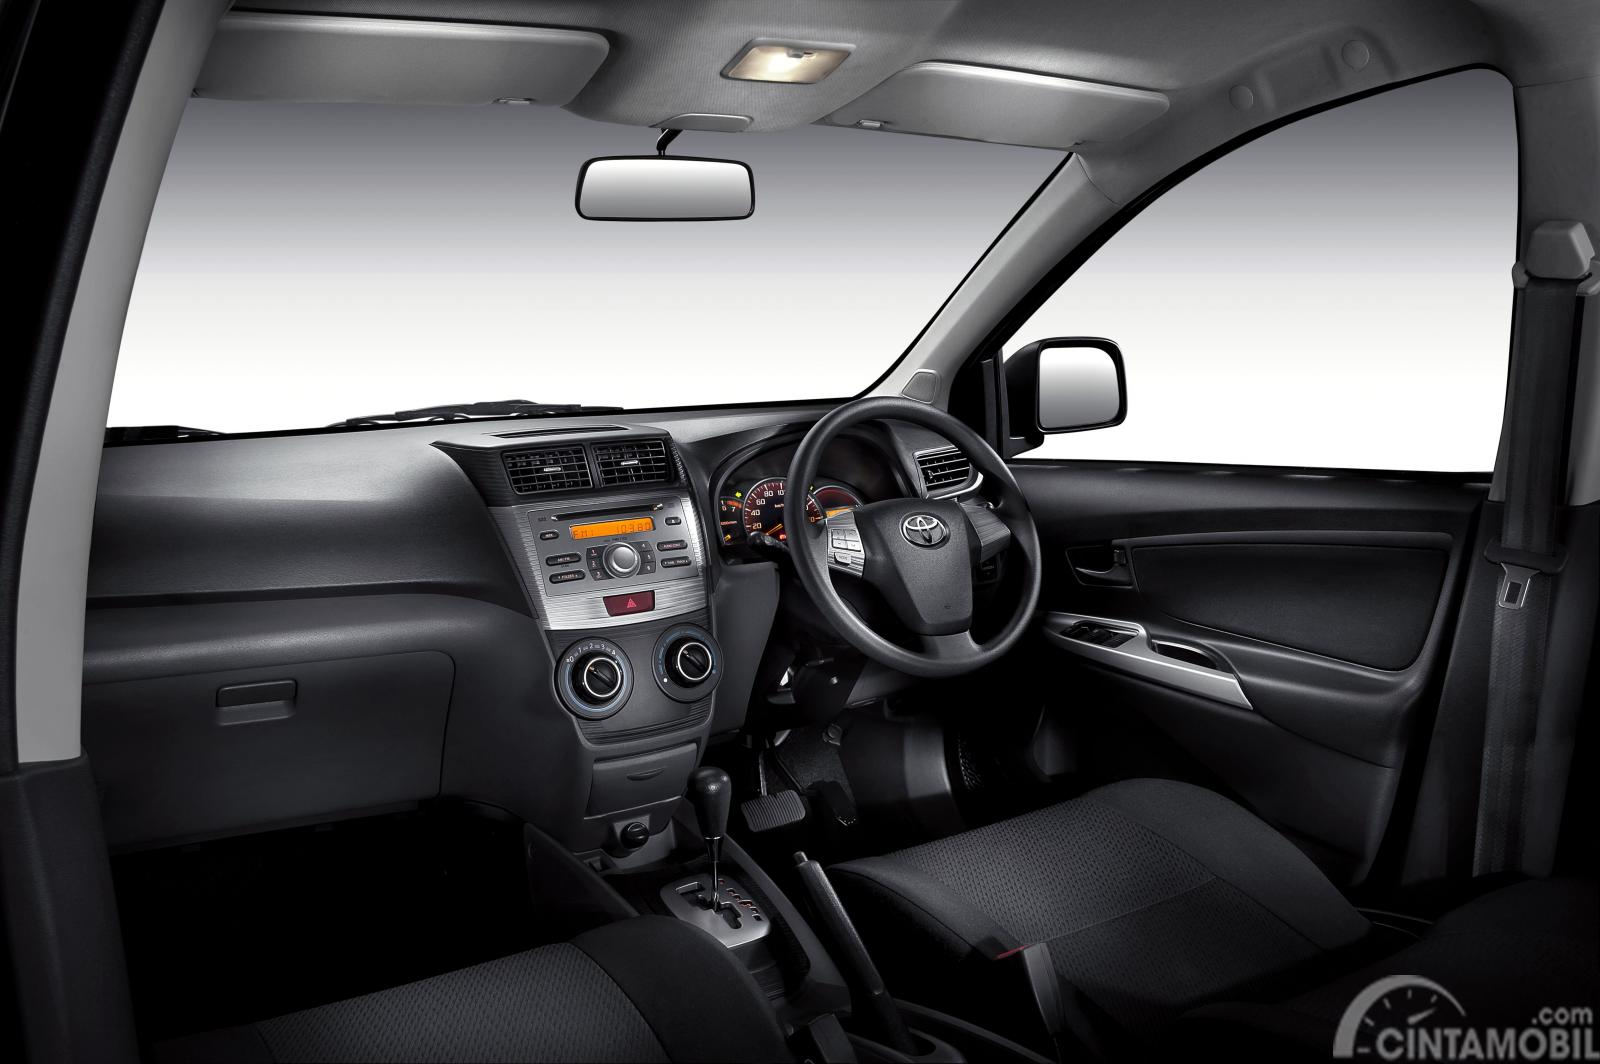 interior grand new avanza veloz 1.5 all camry 2.5 g review toyota 1 5 2011 gambar layout mobil